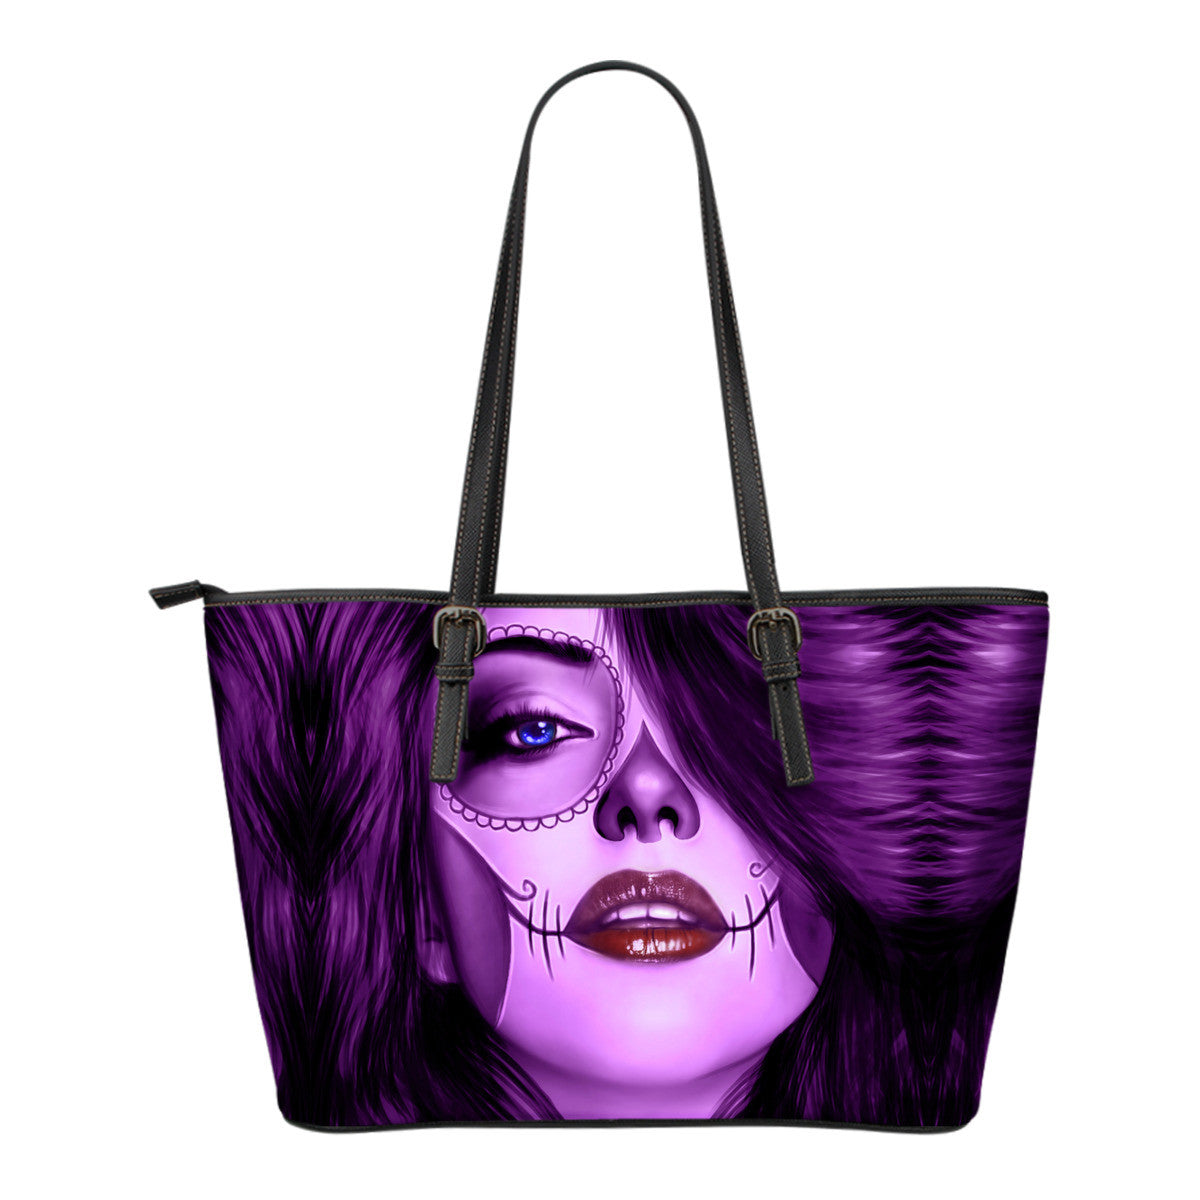 Tattoo Calavera Girl Small Leather Tote Bag - Collection 3